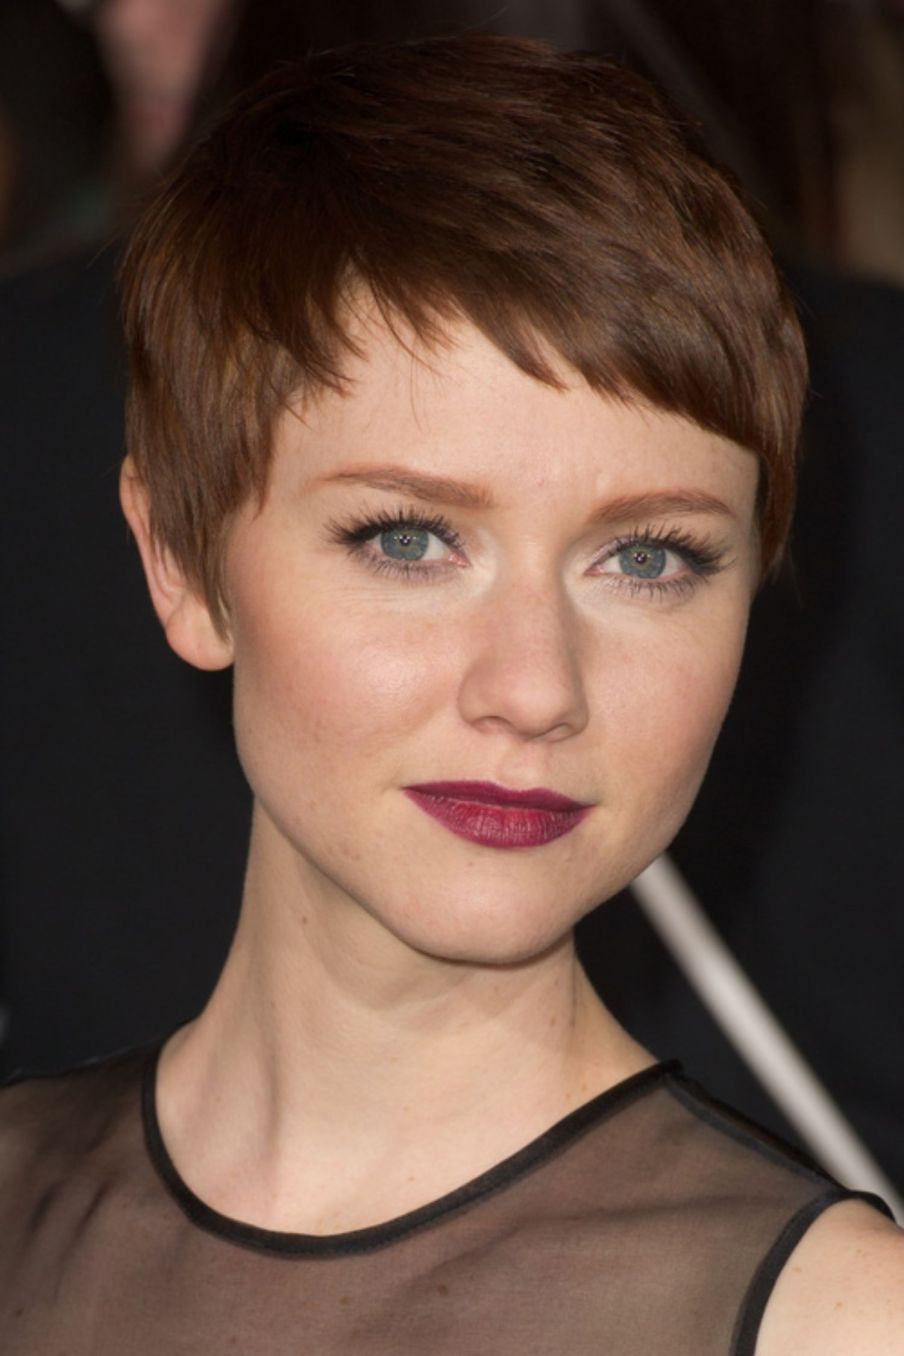 Pixie haircuts with bangs terrific tapers pixie life